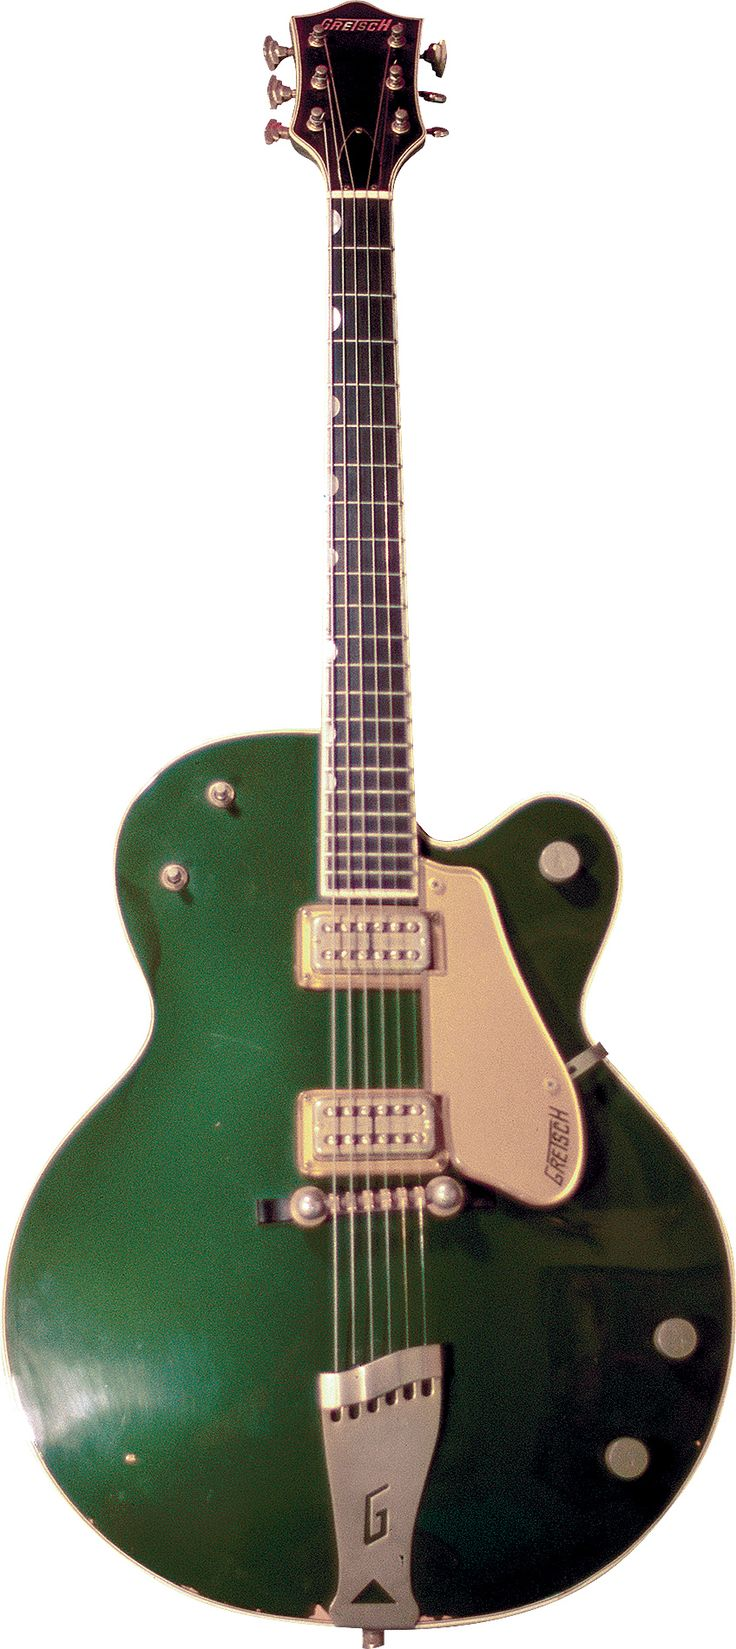 "Gretsch aficionados know the adage – ""Clubs have holes and a Gentleman don't!"" With this guitar, though, somebody messed with the system! Under normal circumstances, the only way to view the serial…"